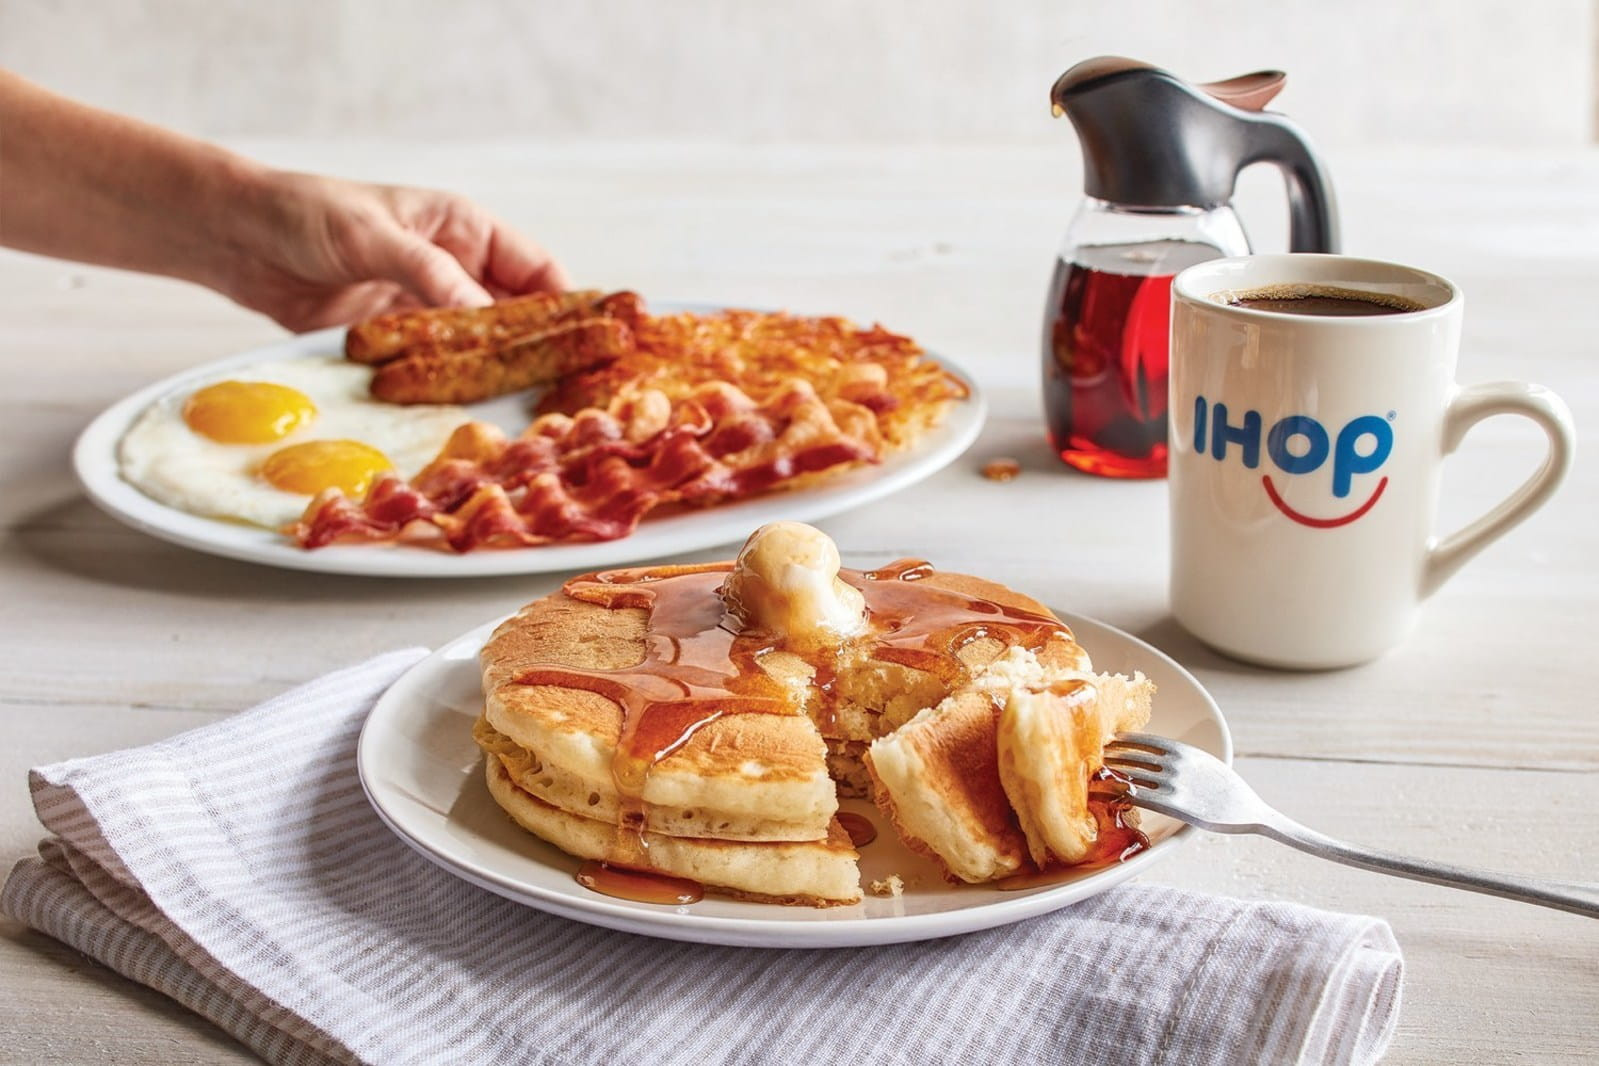 Ihop All You Can Eat Pancakes 2018  IHOP Is Doing All You Can Eat Pancakes At Its CHEAPEST